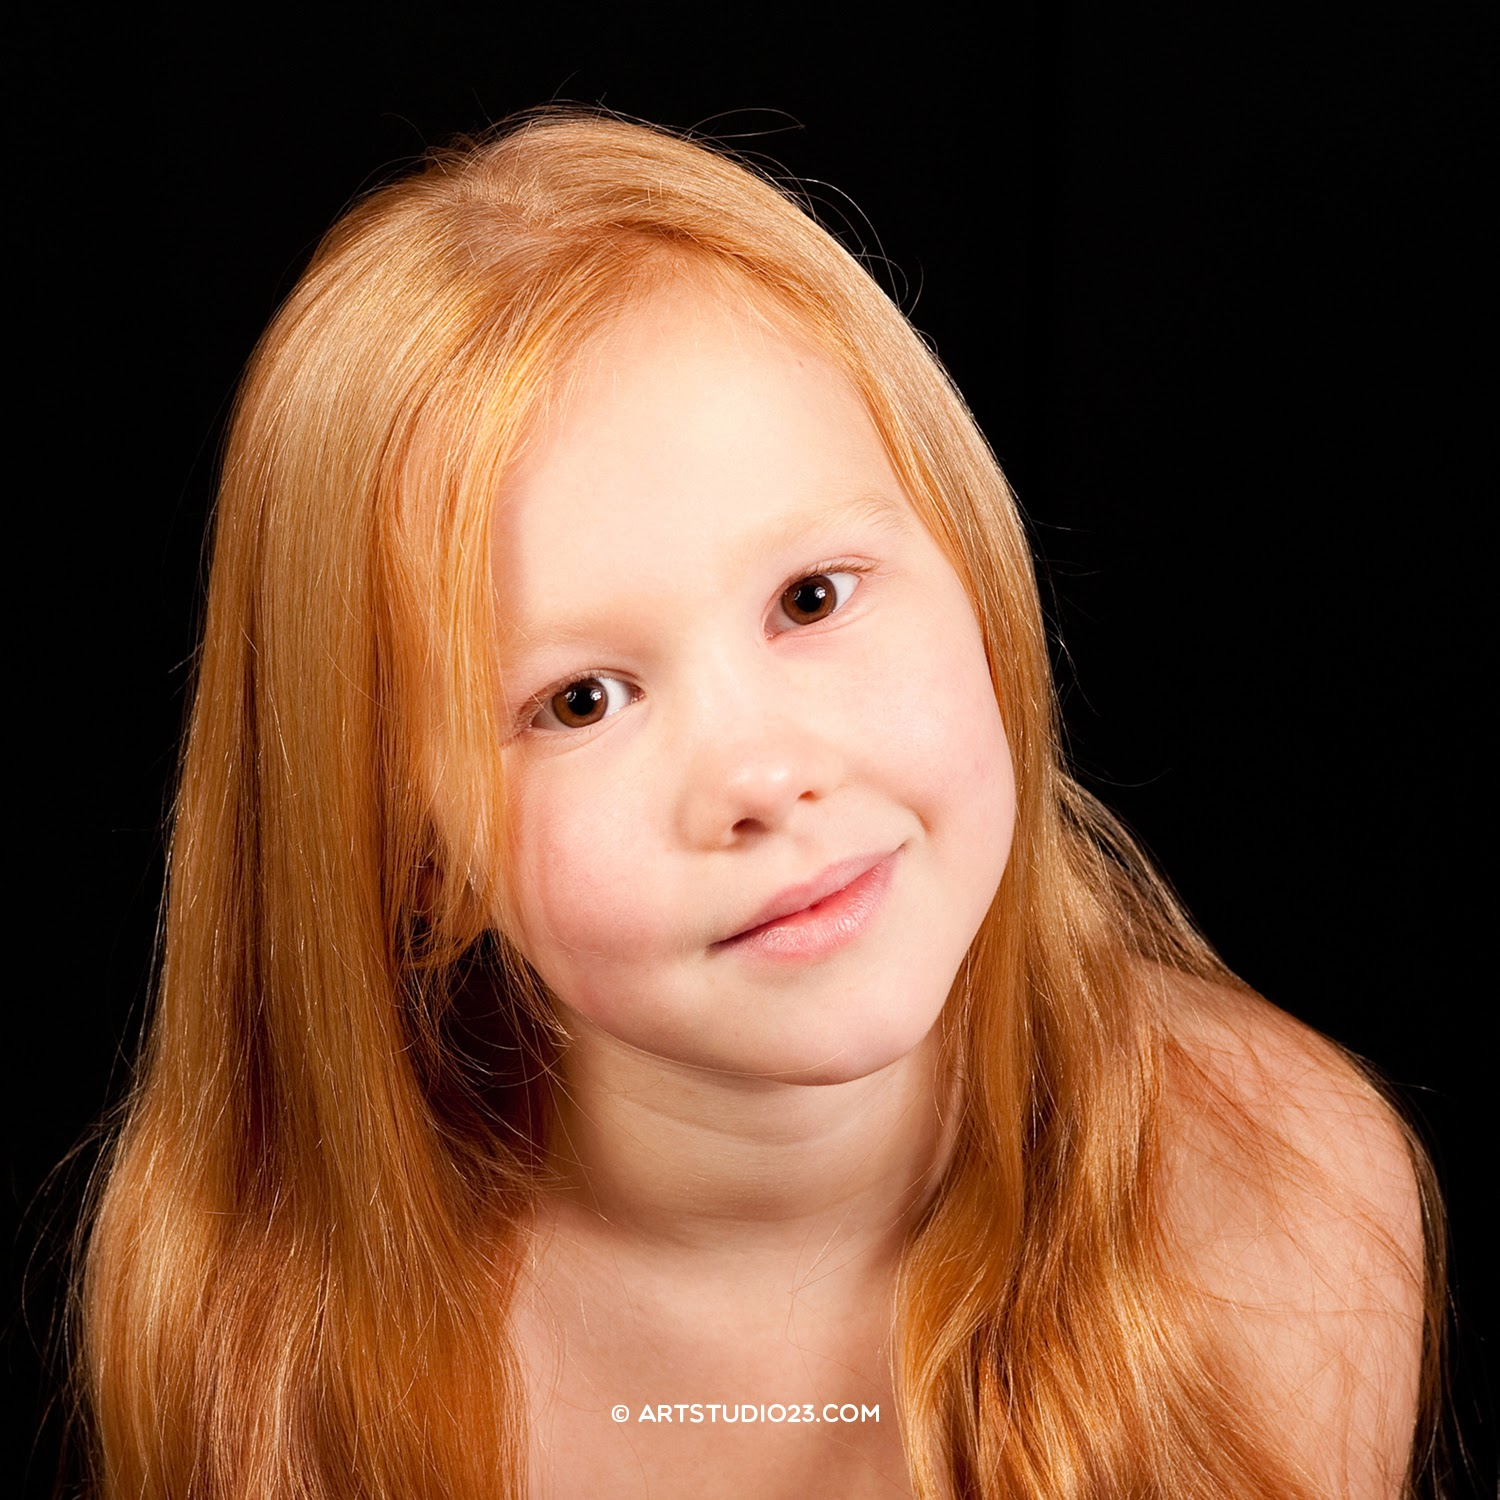 Redhead photo portrait